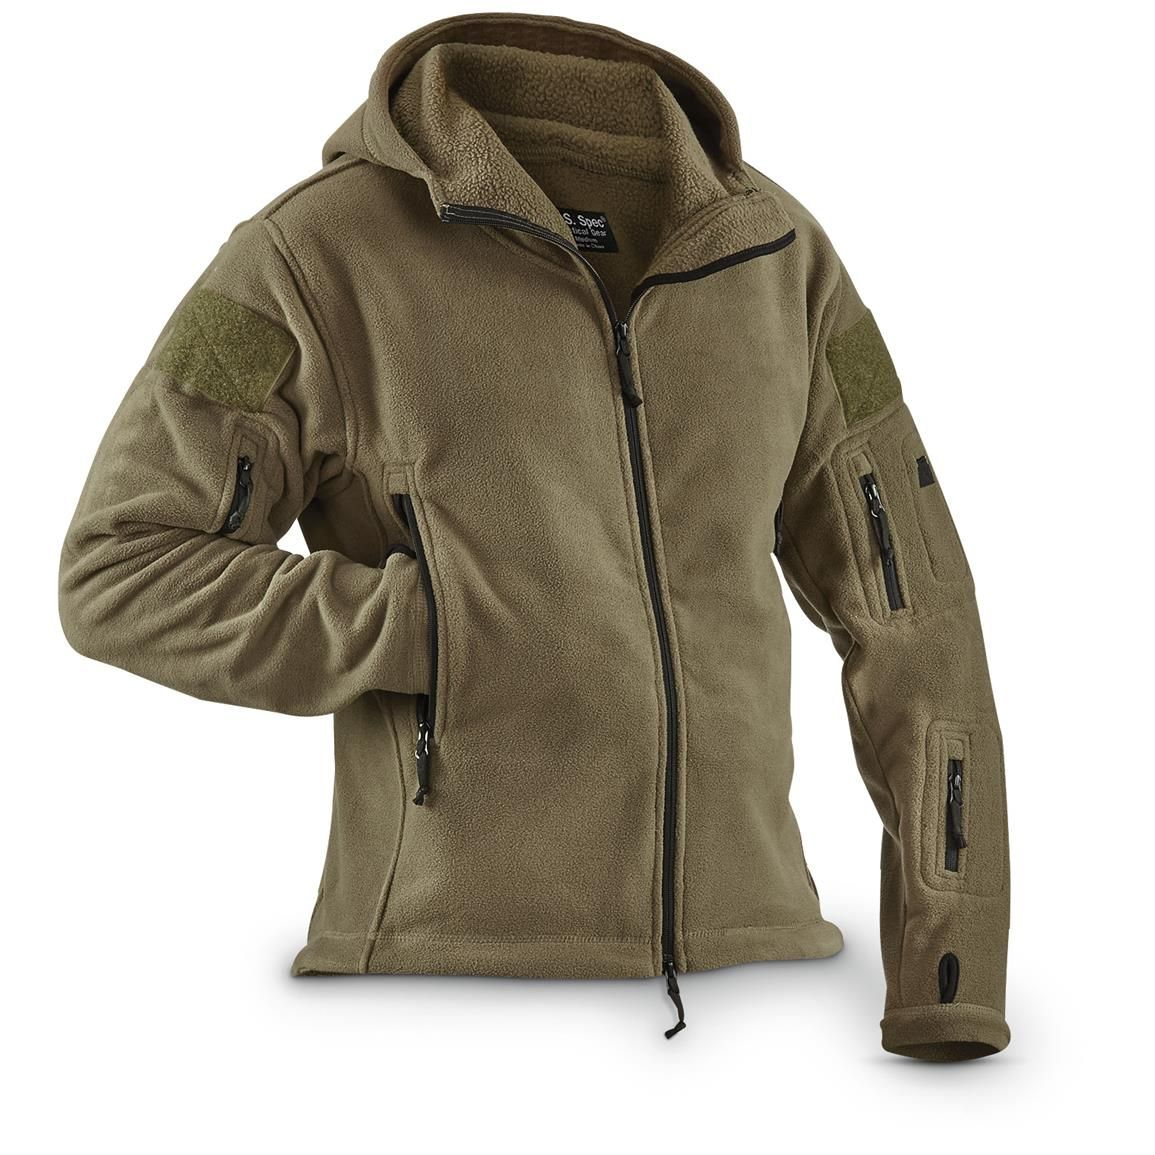 U.S. Spec™ Heavyweight Hooded Fleece Jacket | Gift Ideas ...